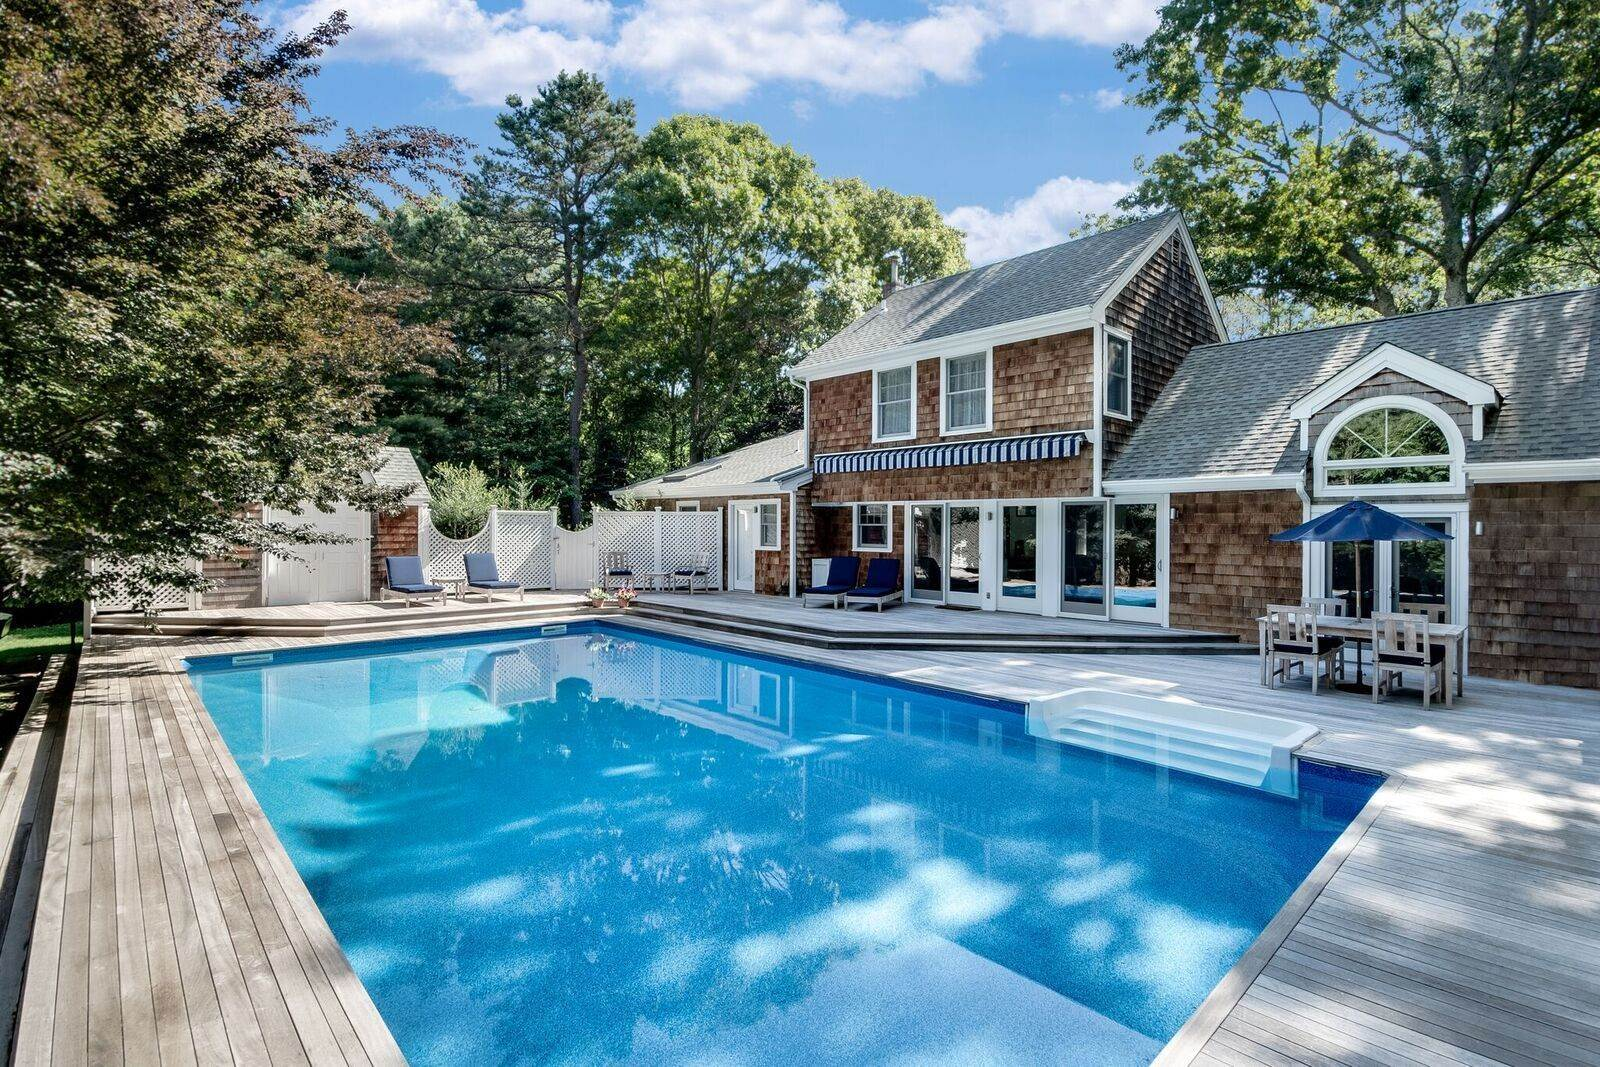 Single Family Home at Renovated Perfect Summer Getaway! Sagaponack, NY 11962